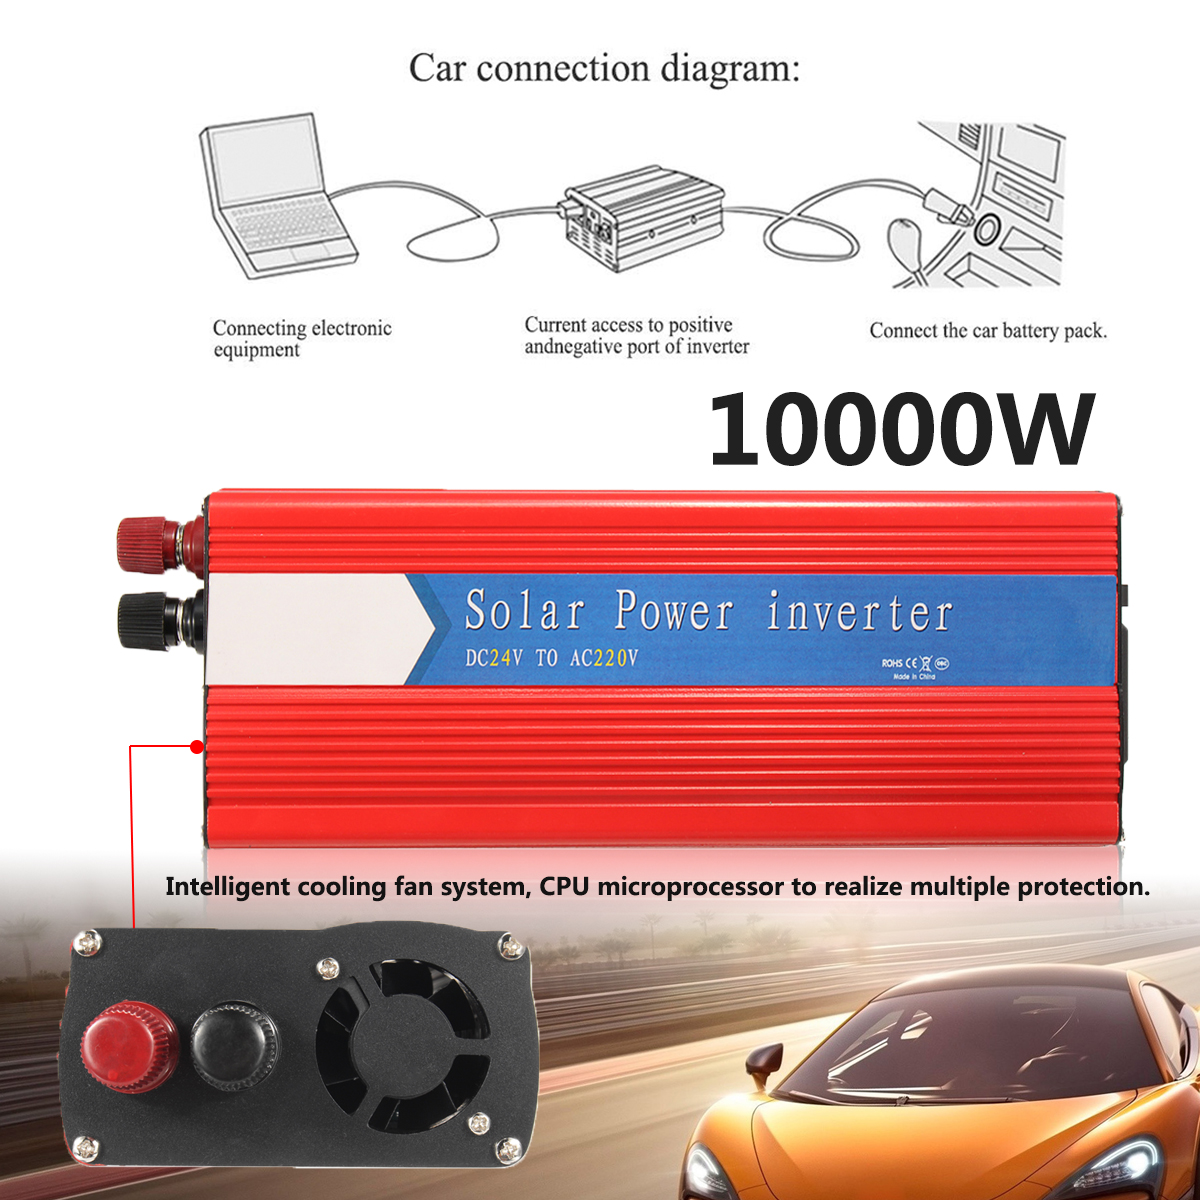 Car Power Inverter PAEK 10000W 12/24V To AC 220/110V USB Modified Sine Wave Voltage Transformer Red Universal Intelligent 12 24v to ac 220 110v car power inverter converter peak 10000w usb modified sine wave voltage transformer universal intelligent